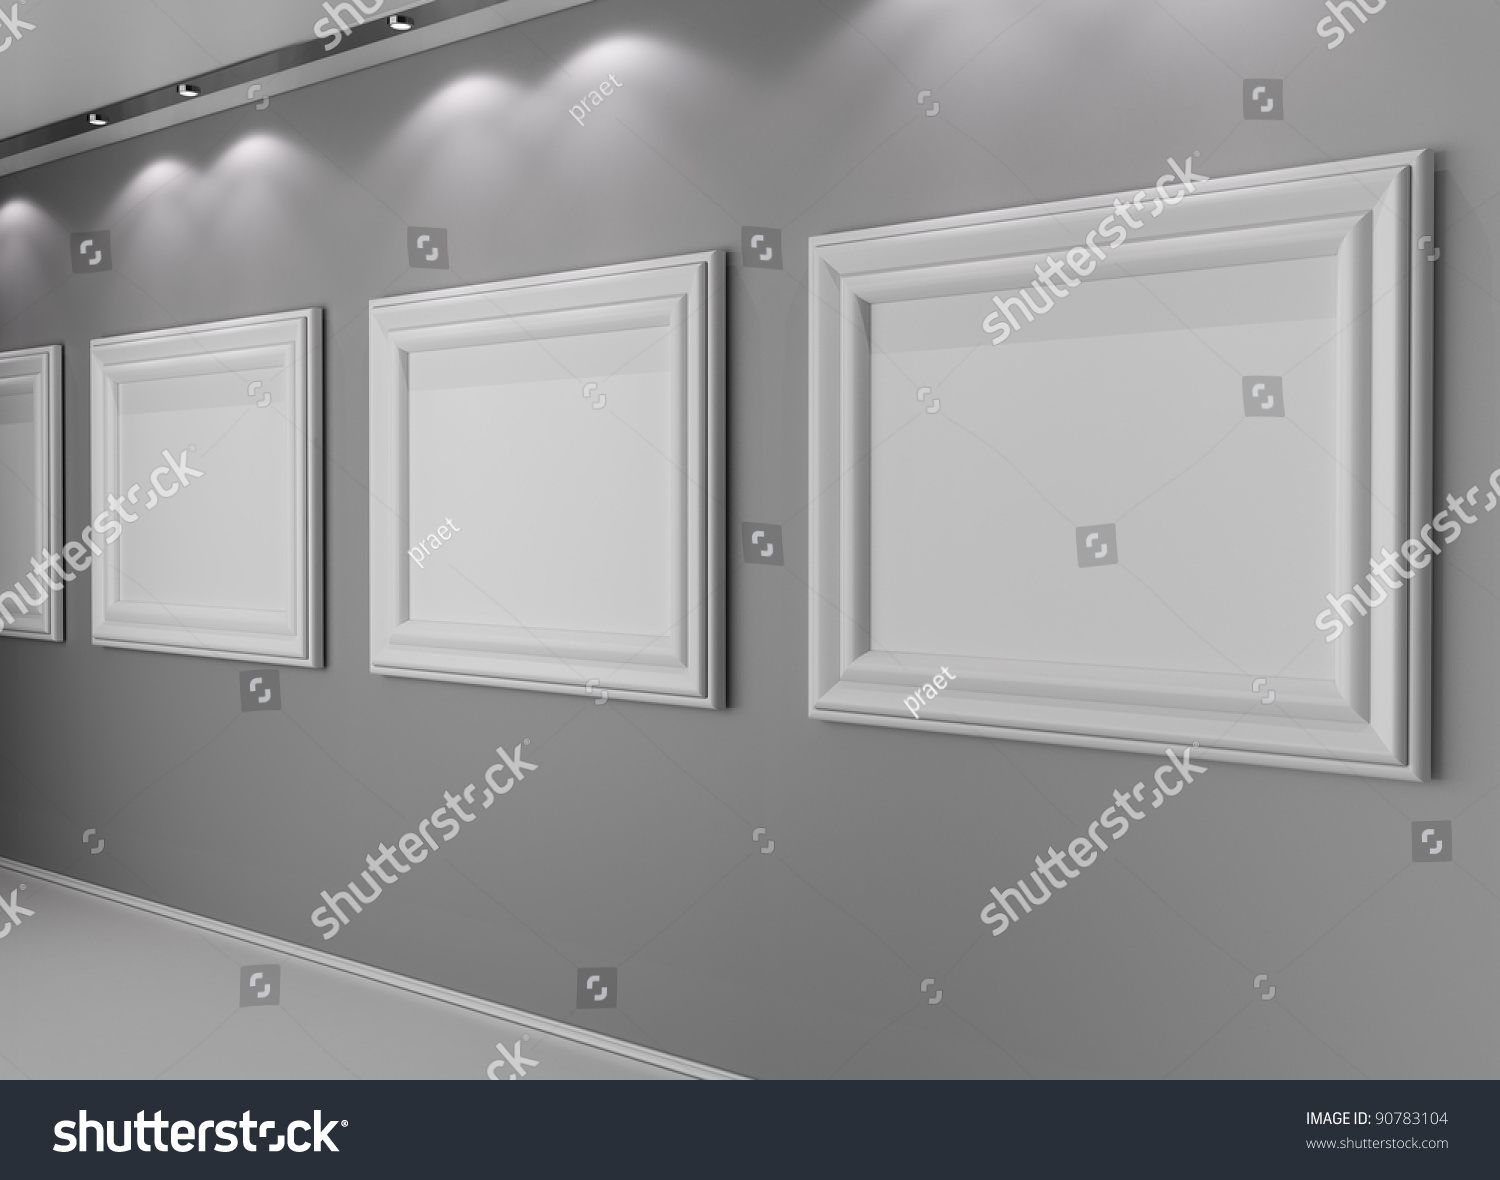 Wall Empty Highlighted Frames Stock Photo 90783104 - Shutterstock